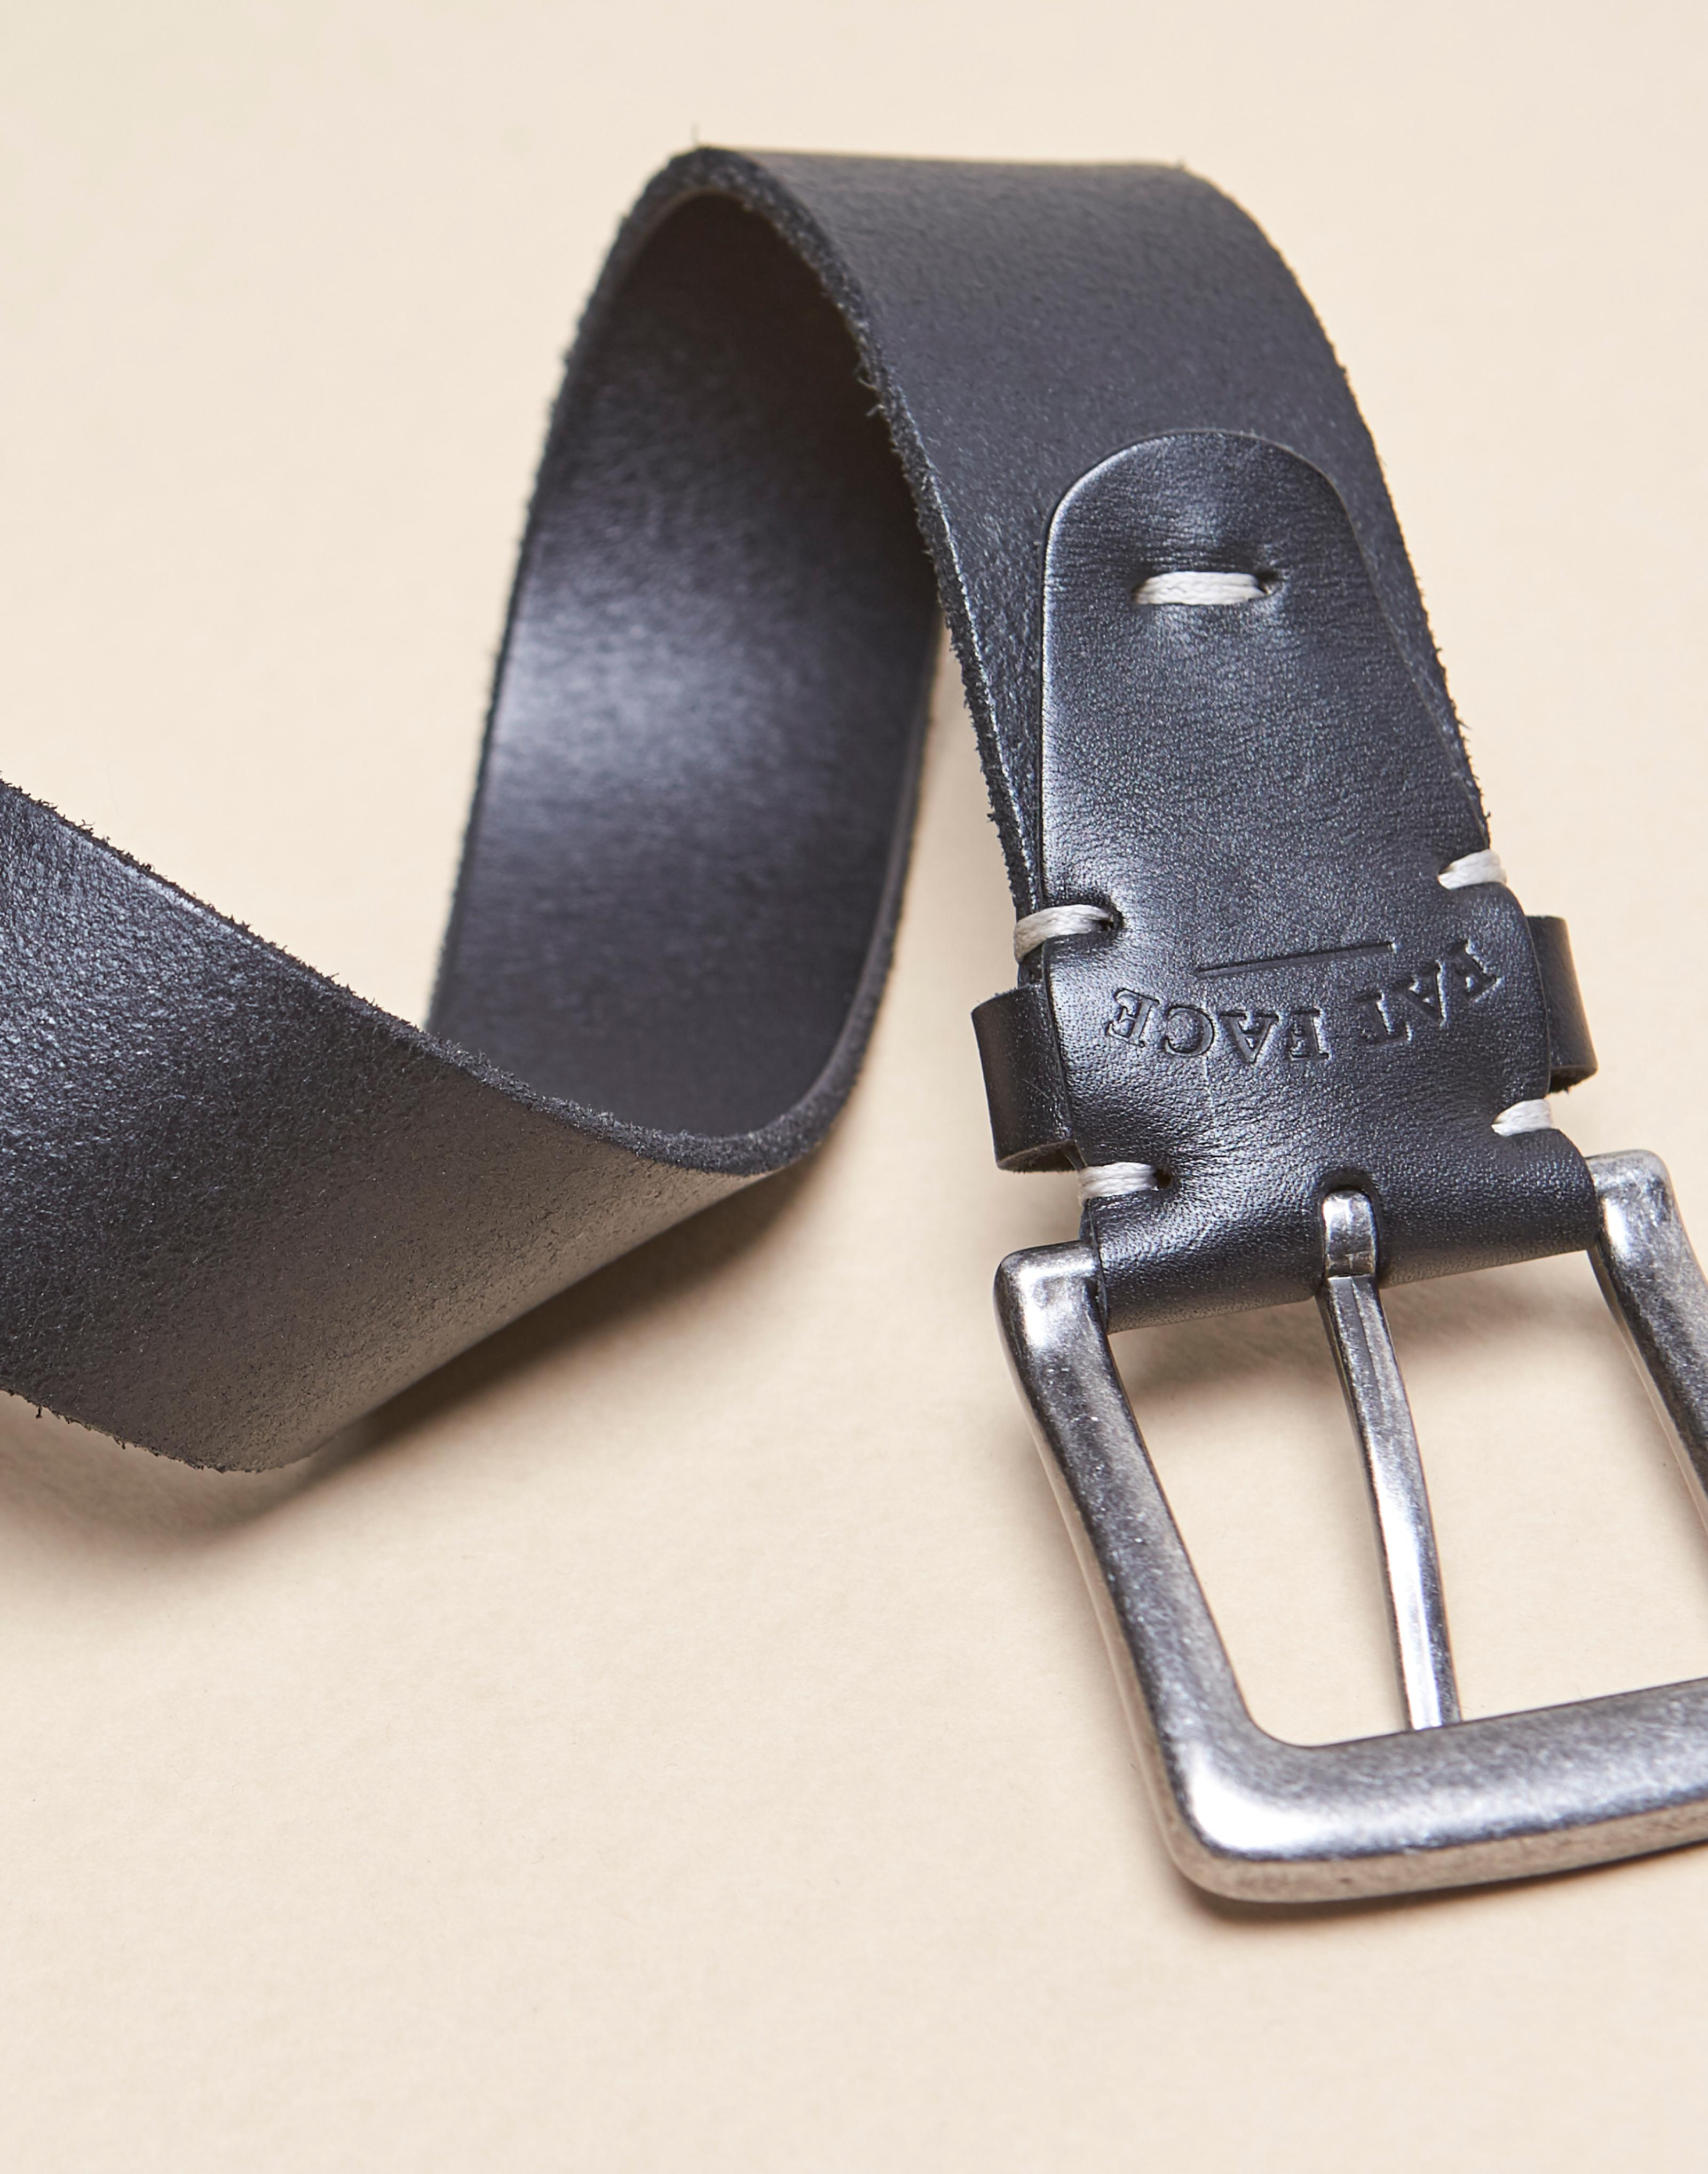 Close up of a black leather belt.